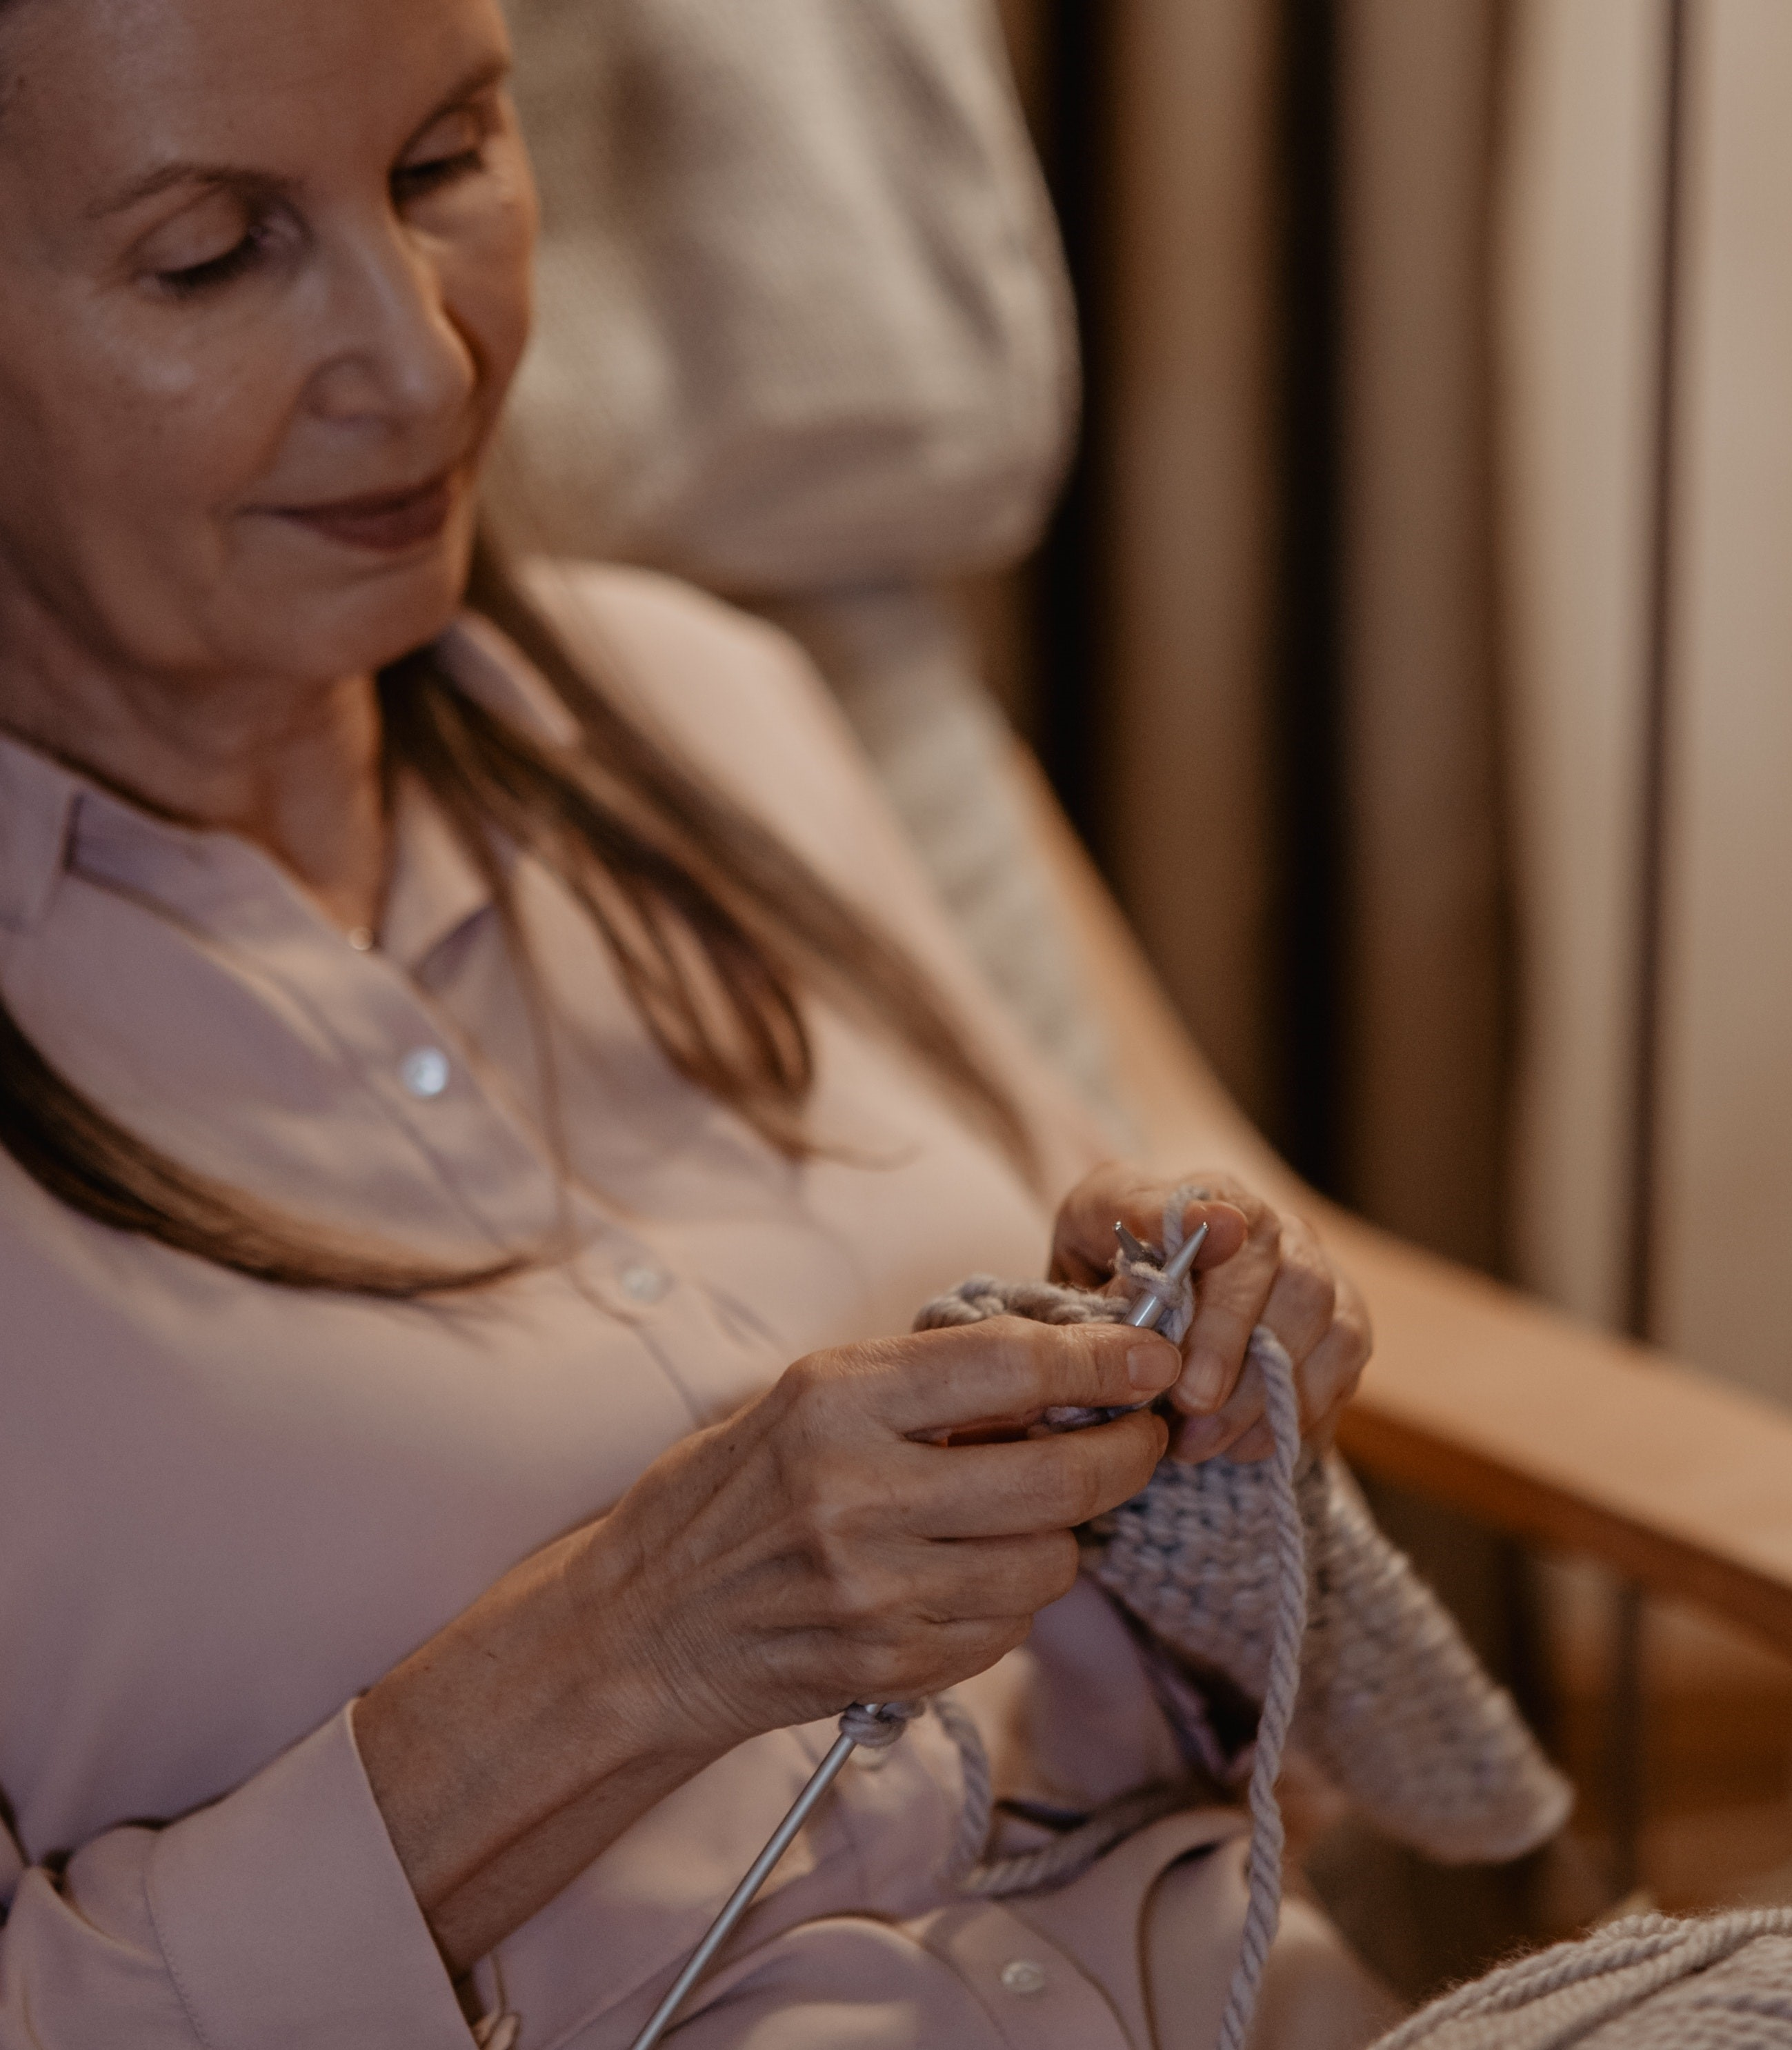 Lady sitting in chair knitting